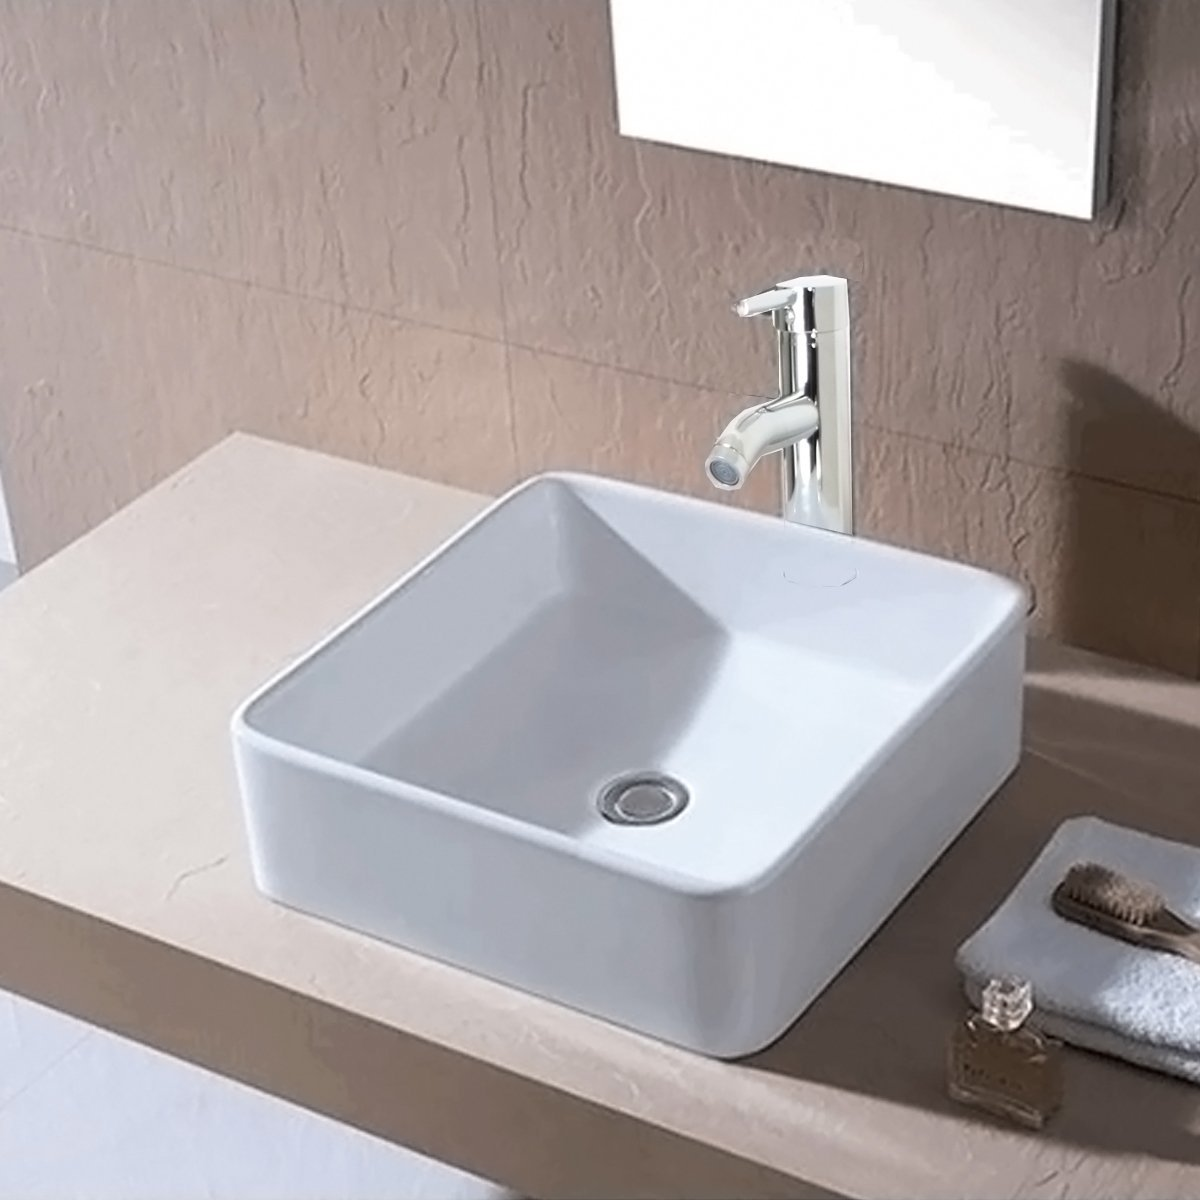 Buy Ainfox Bathroom White Square Lavatory Porcelain Ceramic Vanity Vessel Sink Basin & Pop up... by Ainfox